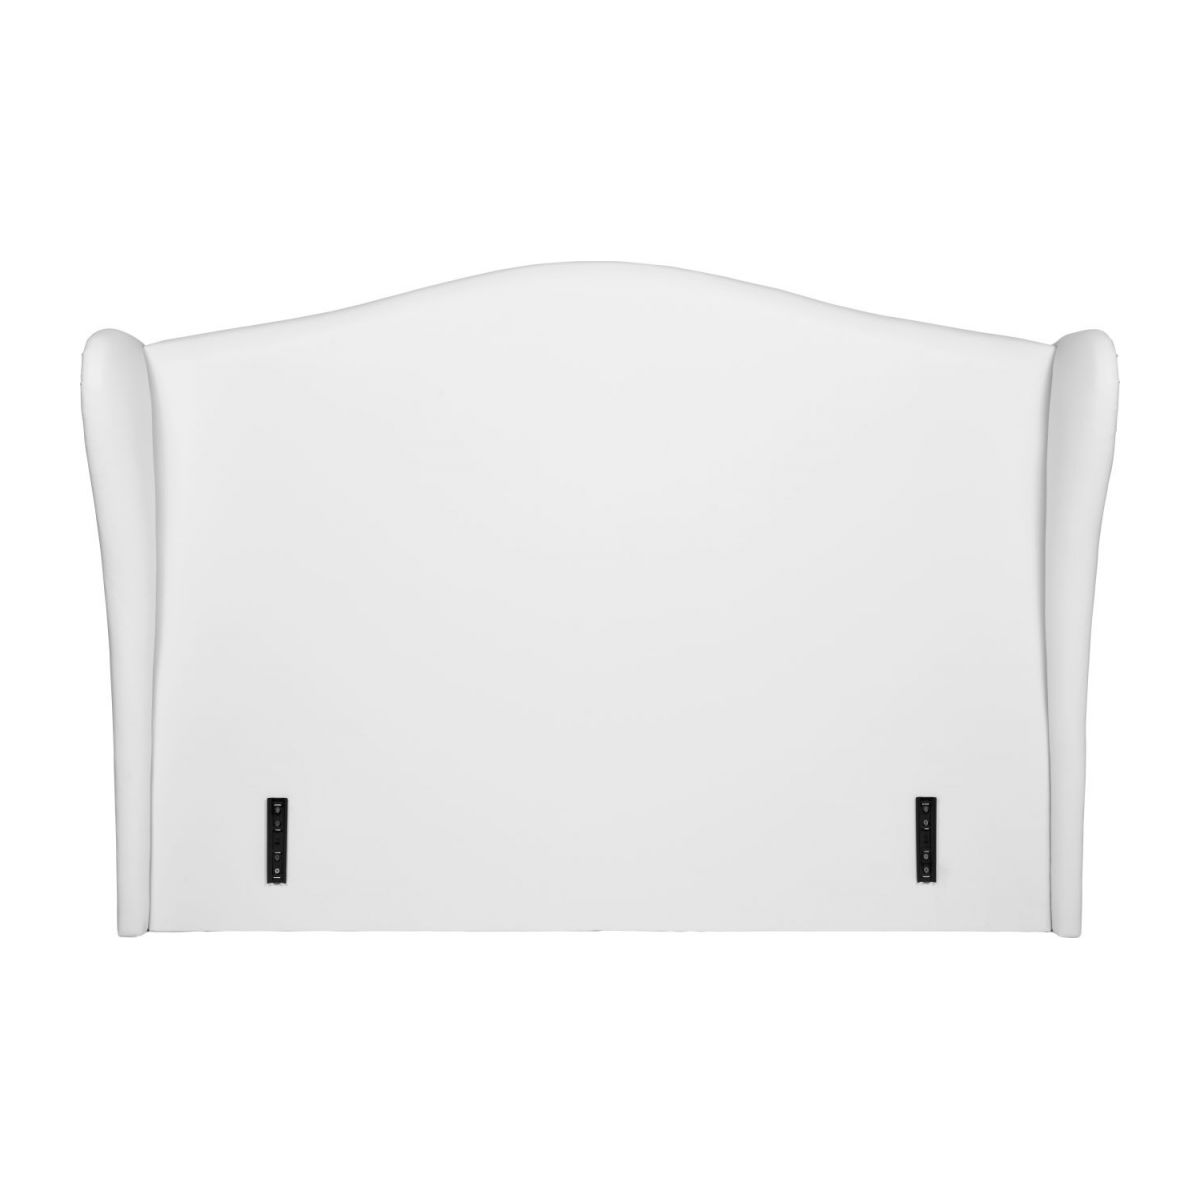 Headboard for 160cm box spring in imitation leather, white n°2